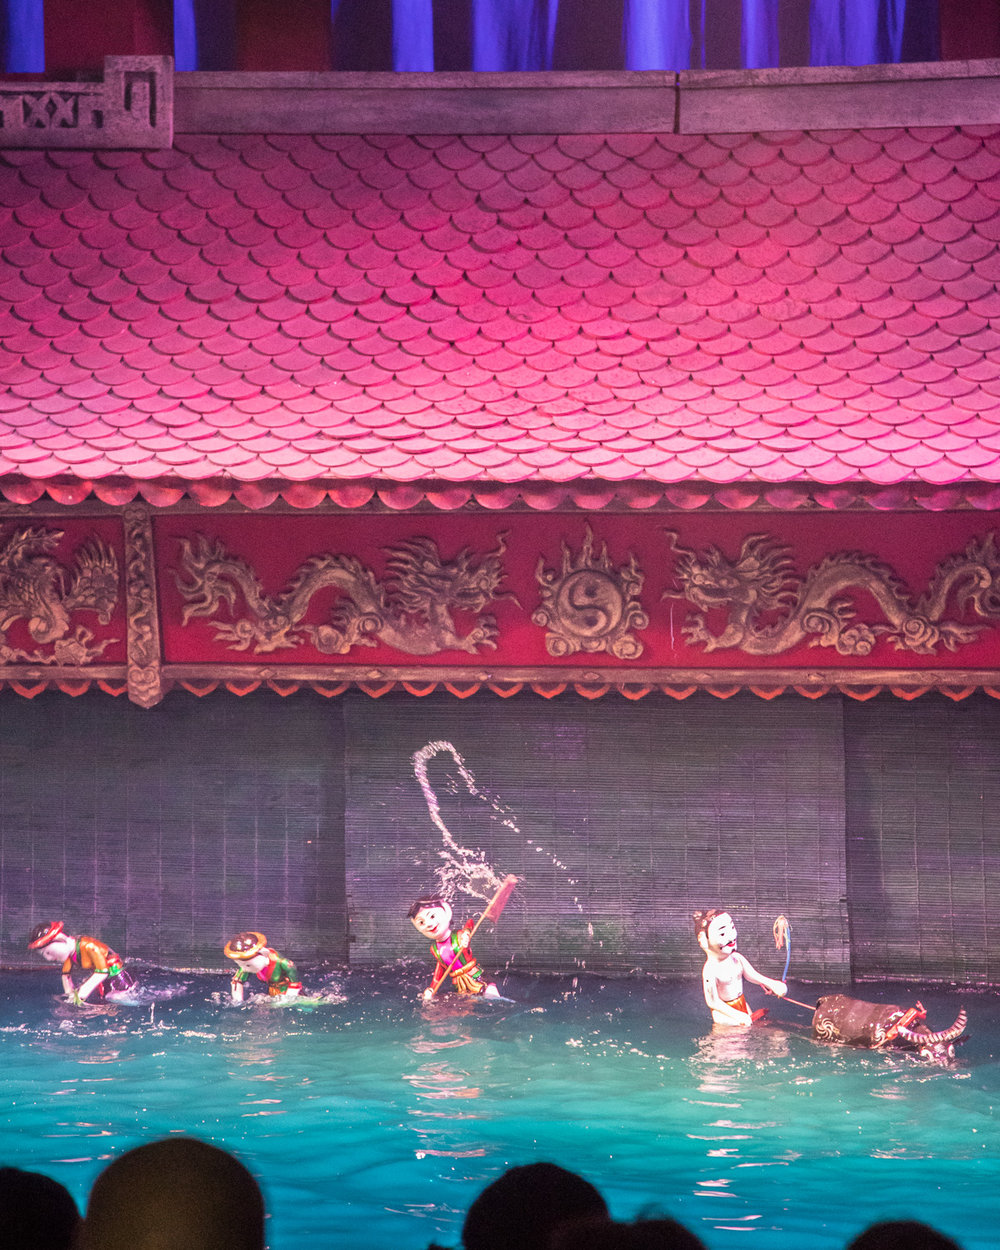 The water puppets - a surprisingly fun thing to do in Hanoi.